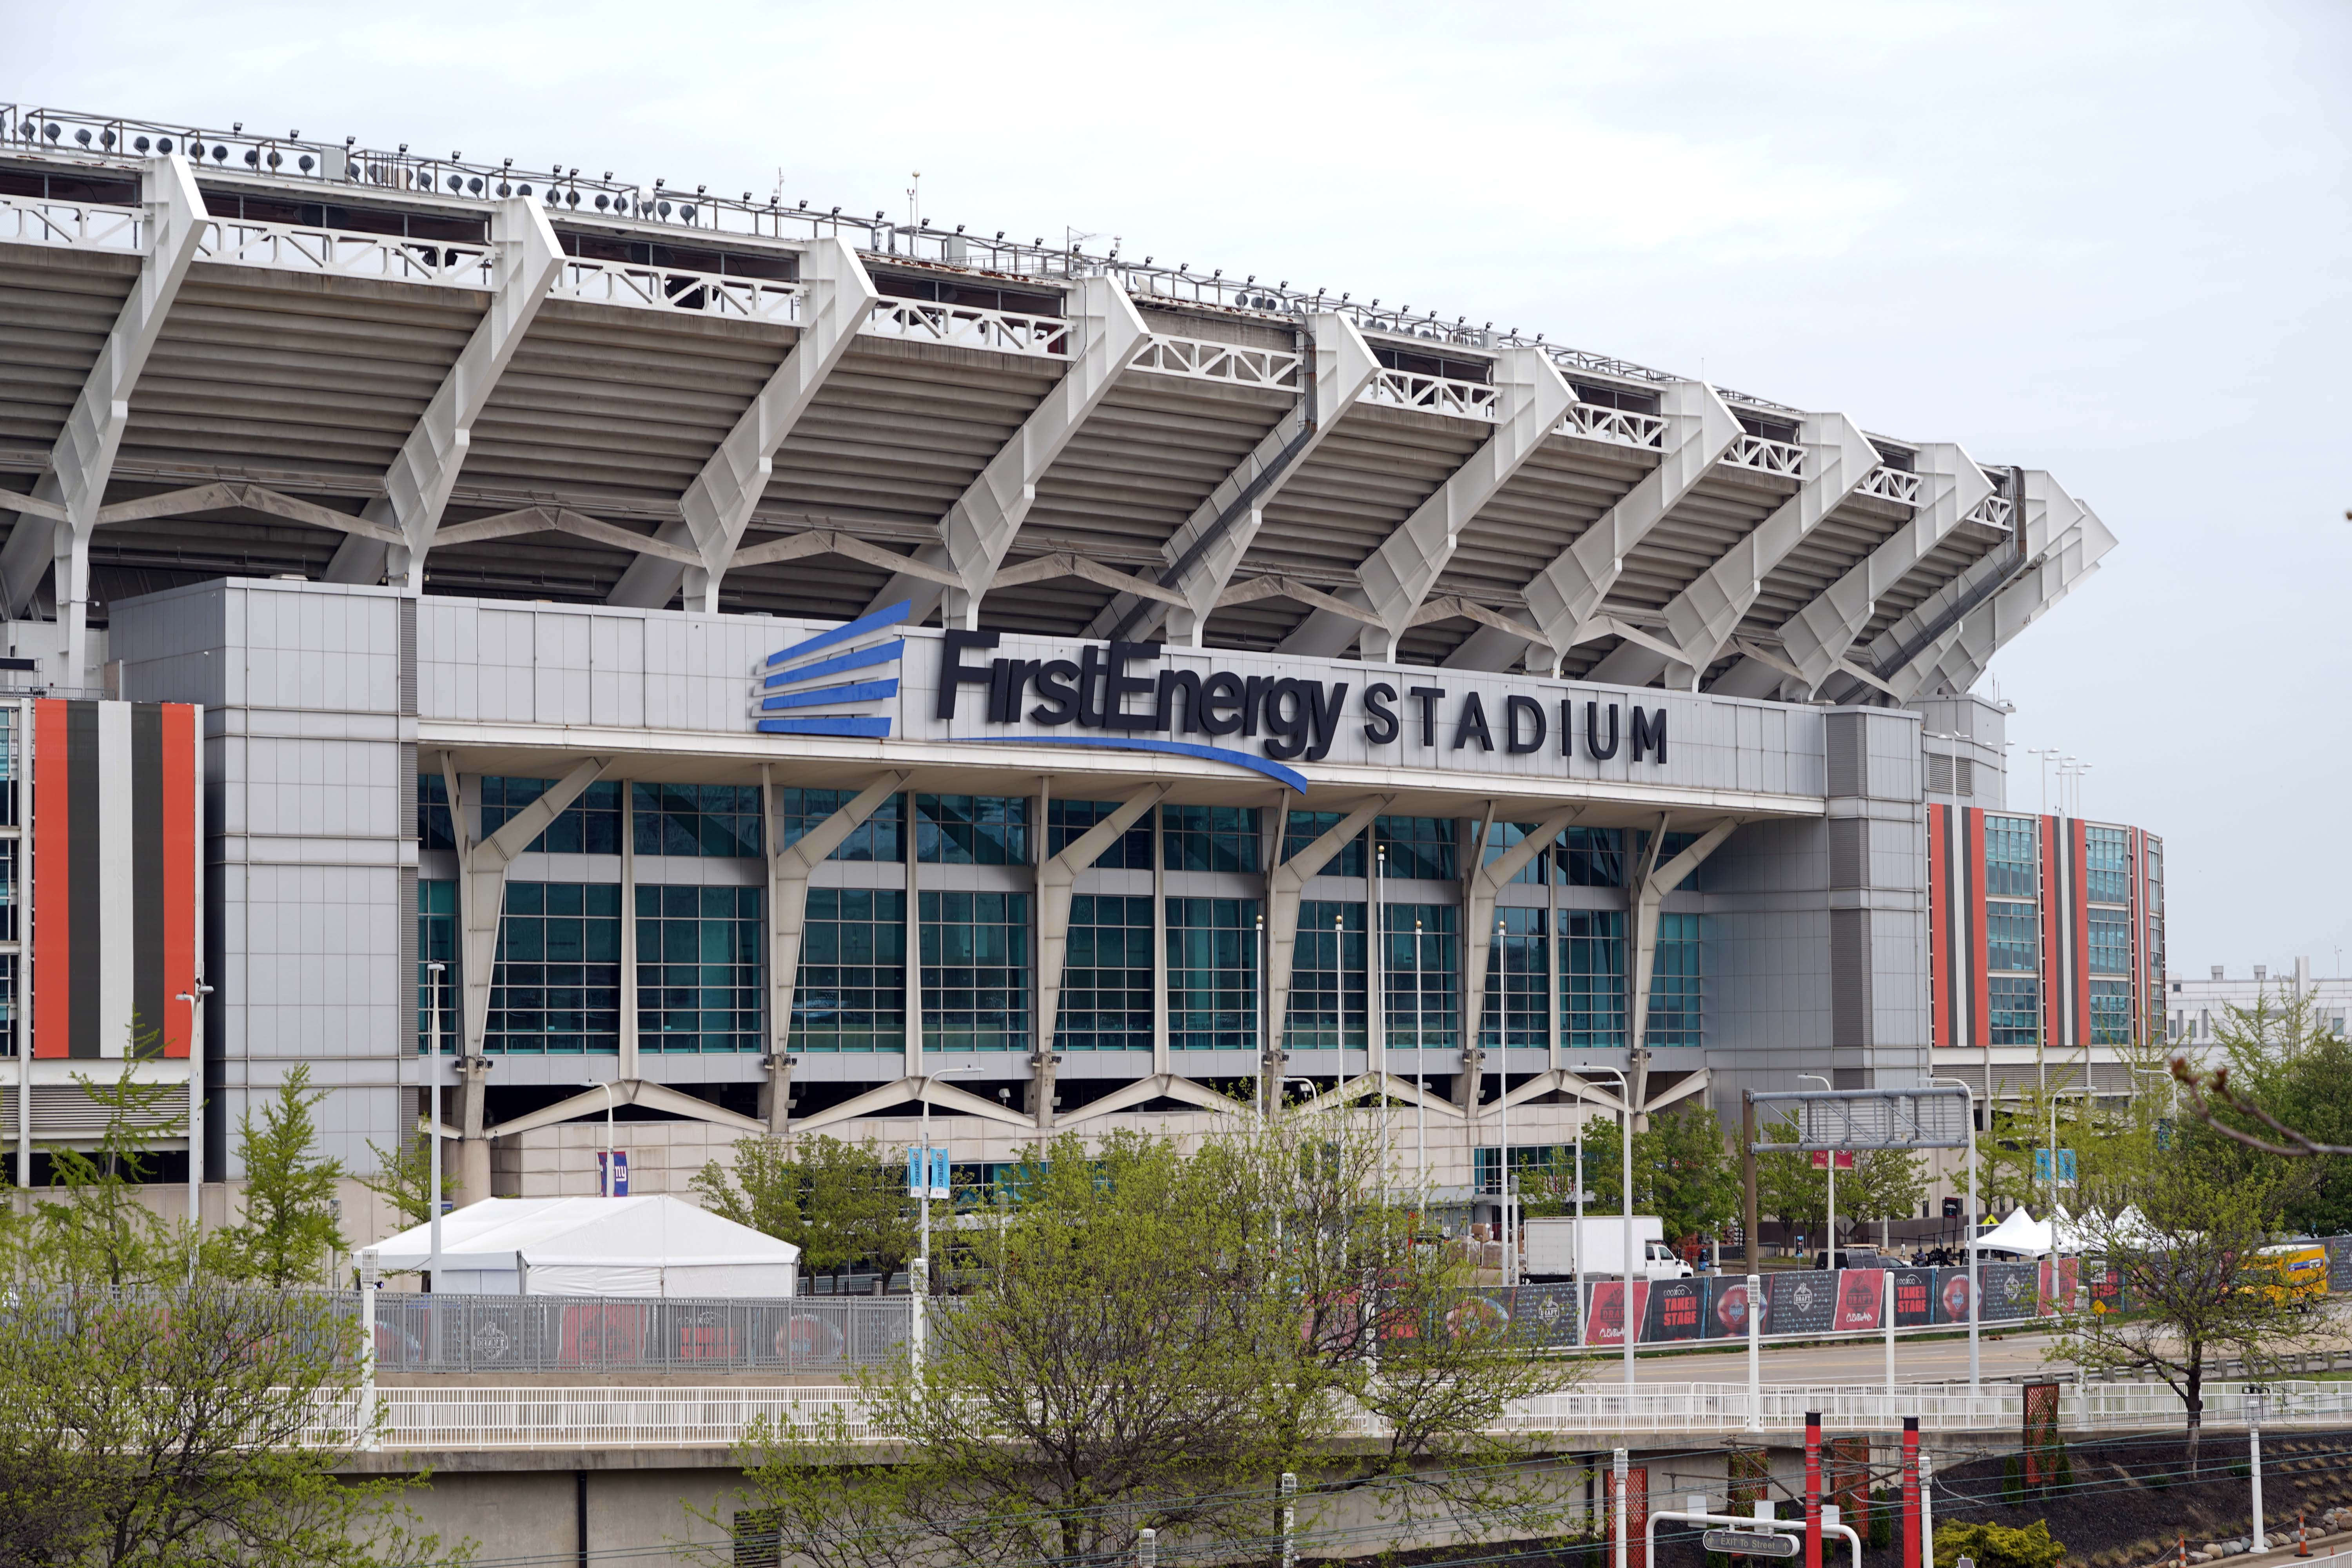 A general overall view of FirstEnergy Stadium. The stadium is the home of the Cleveland Browns and the site of the 2021 NFL Draft.